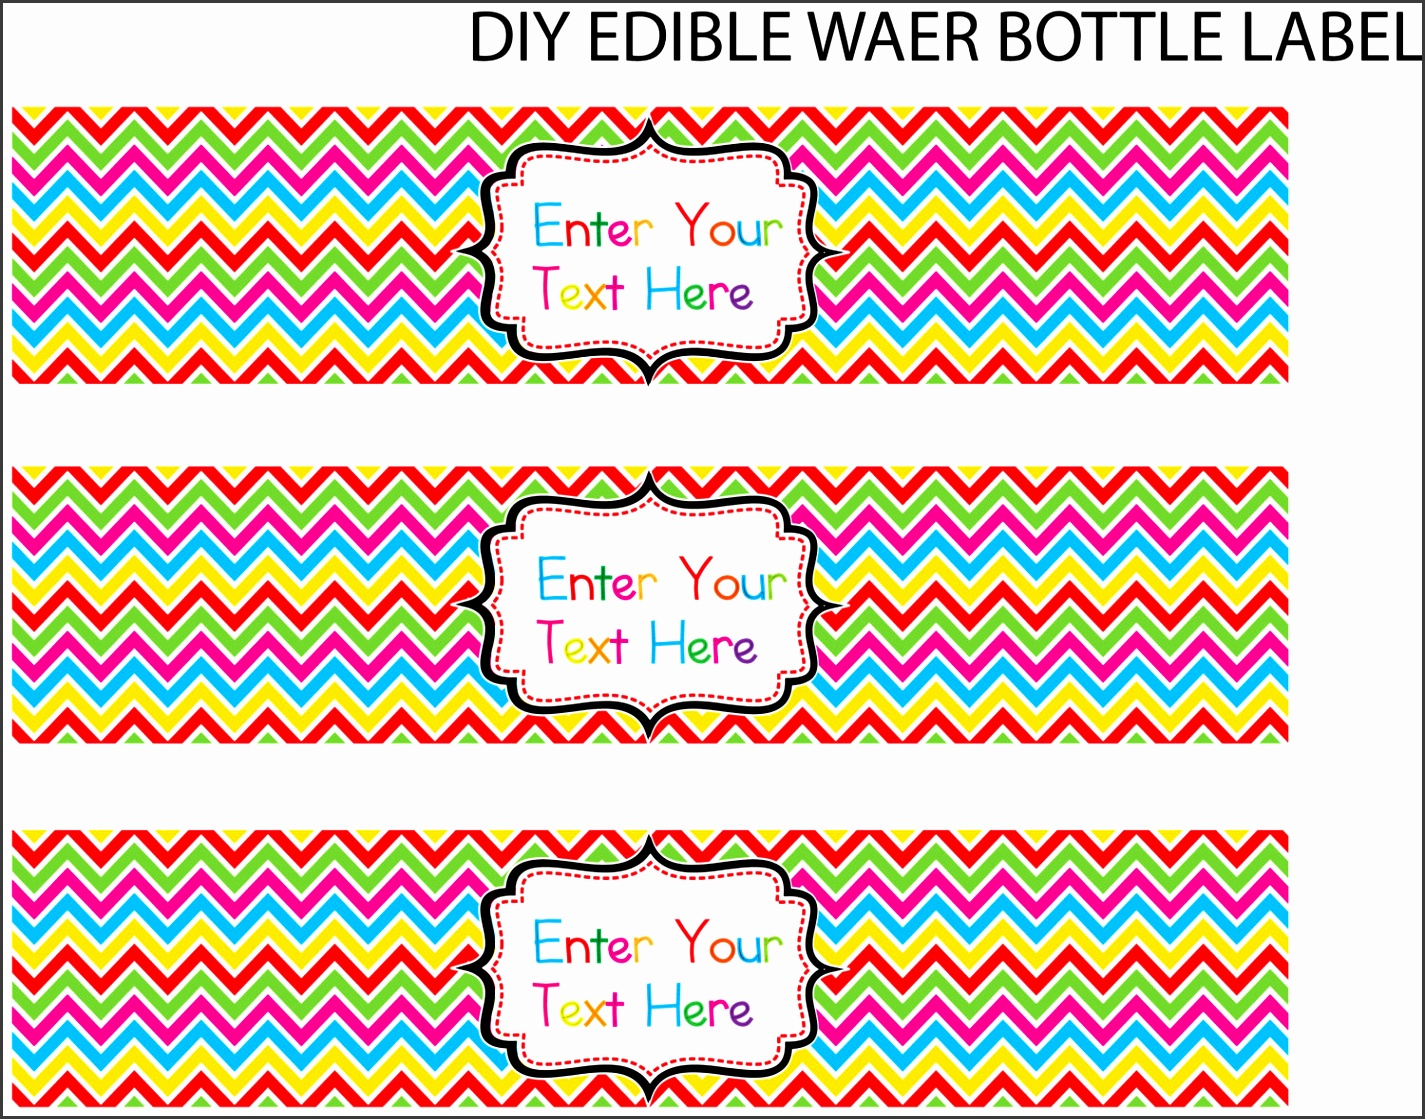 Water Bottle Label Template Microsoft Word